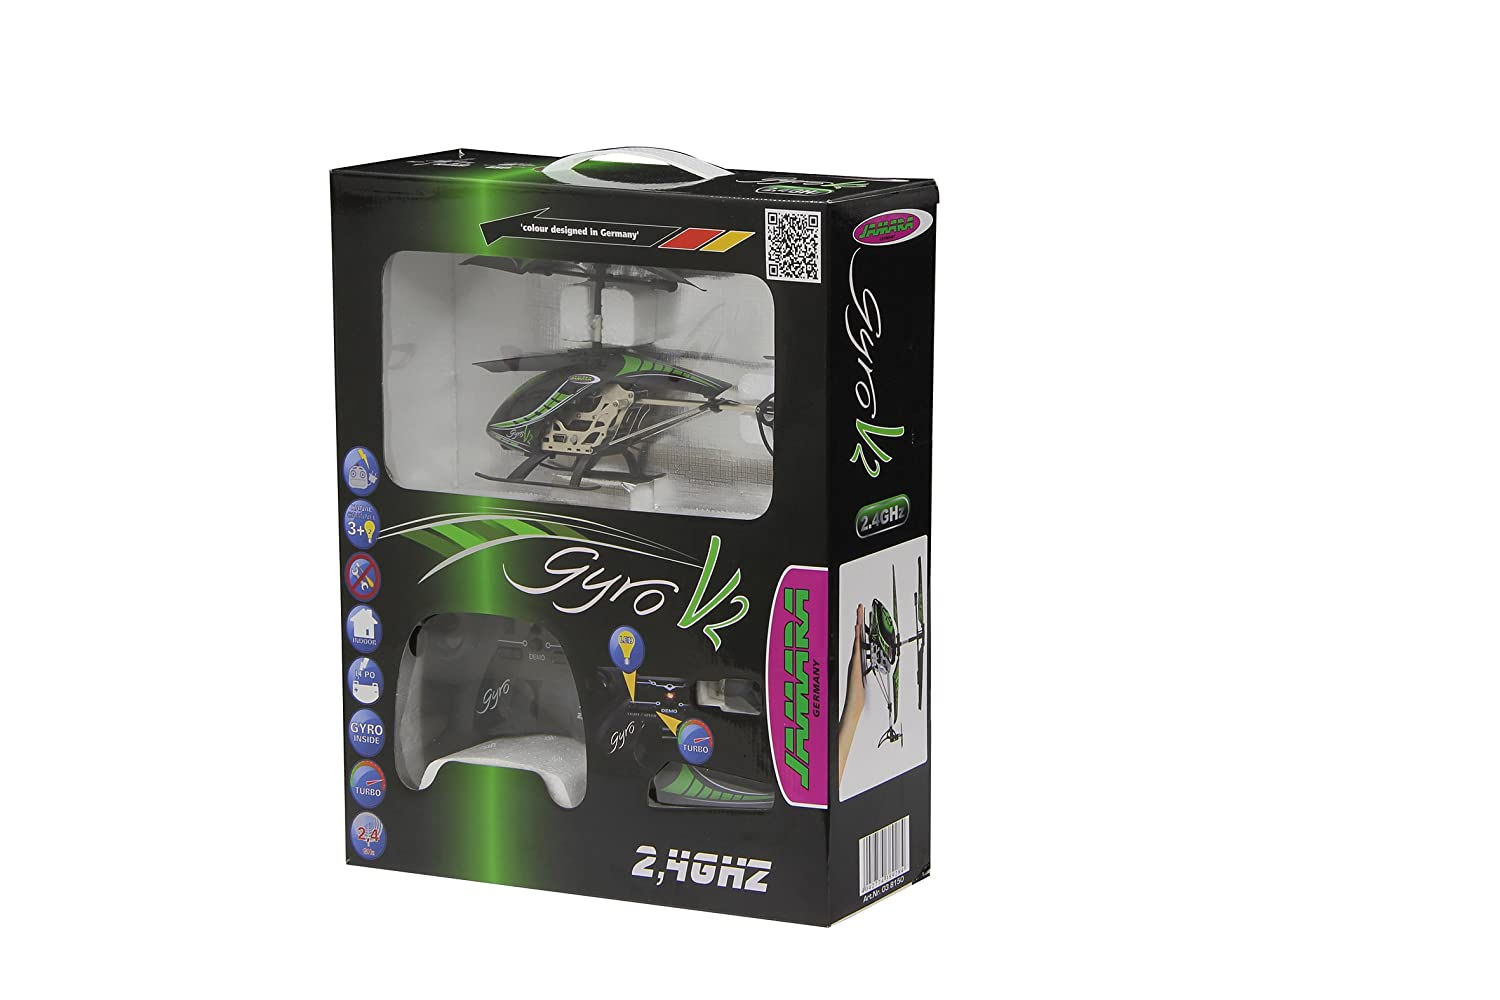 Amazon.com: Jamara Gyro V2 038150 Remote-Controlled Helicopter: Toys & Games